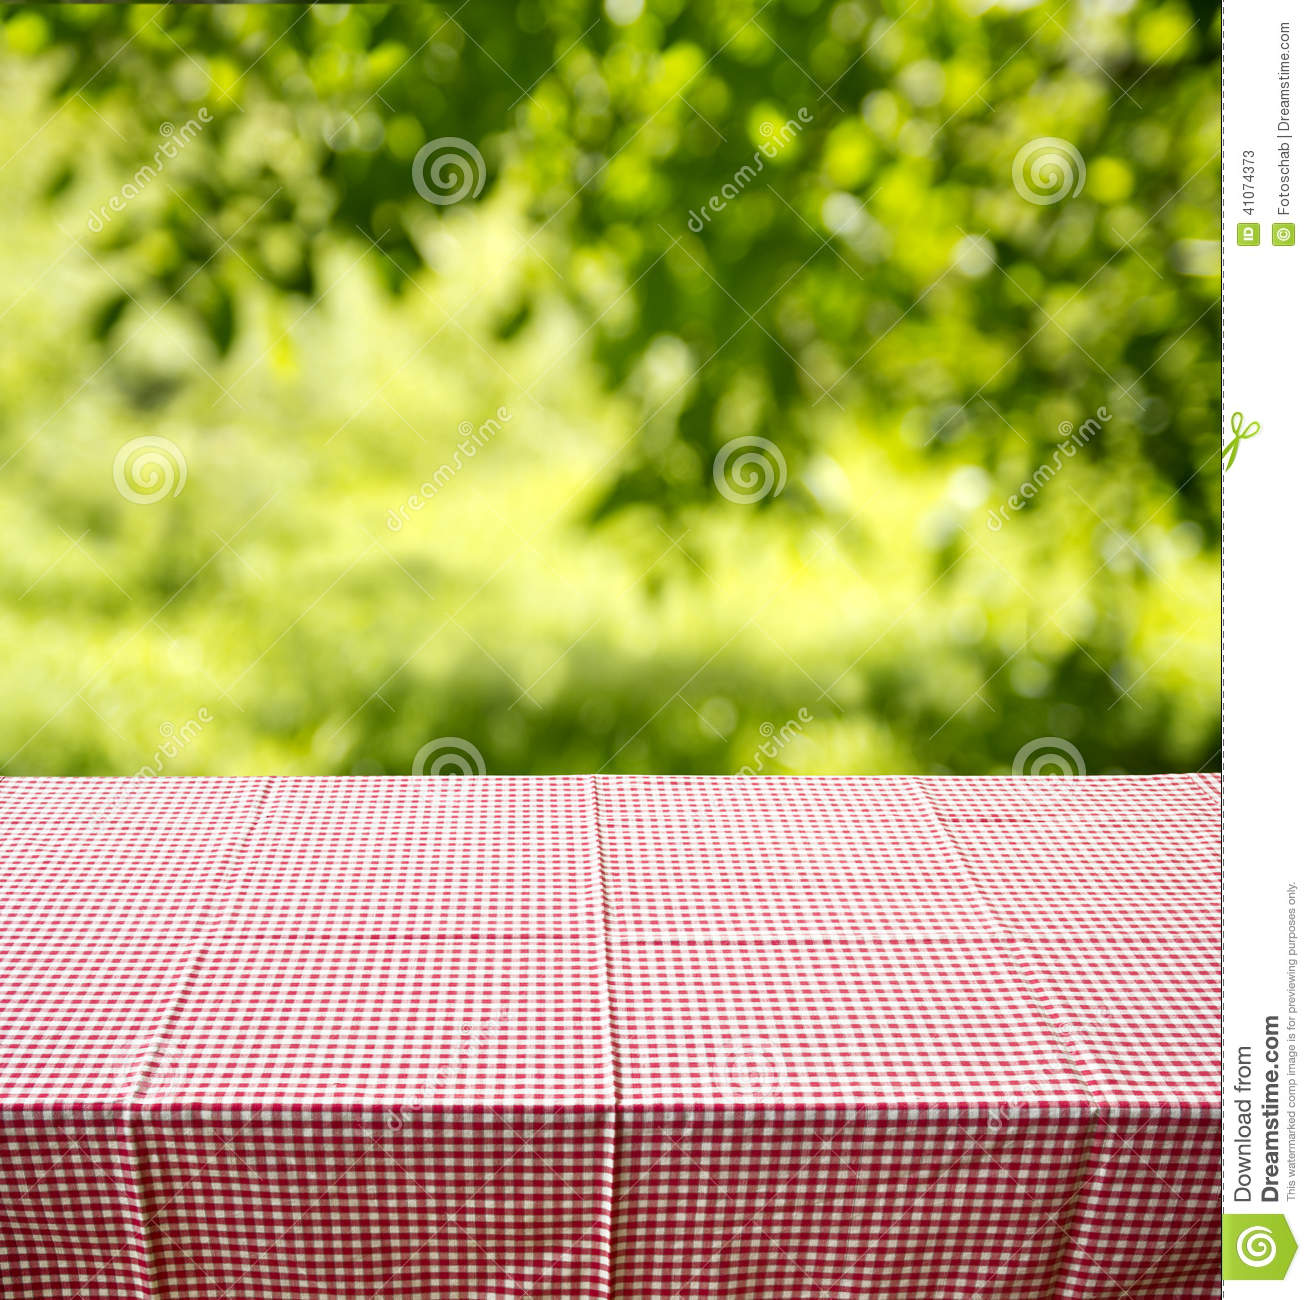 Picnic Table Background Stock Photo Image 41074373